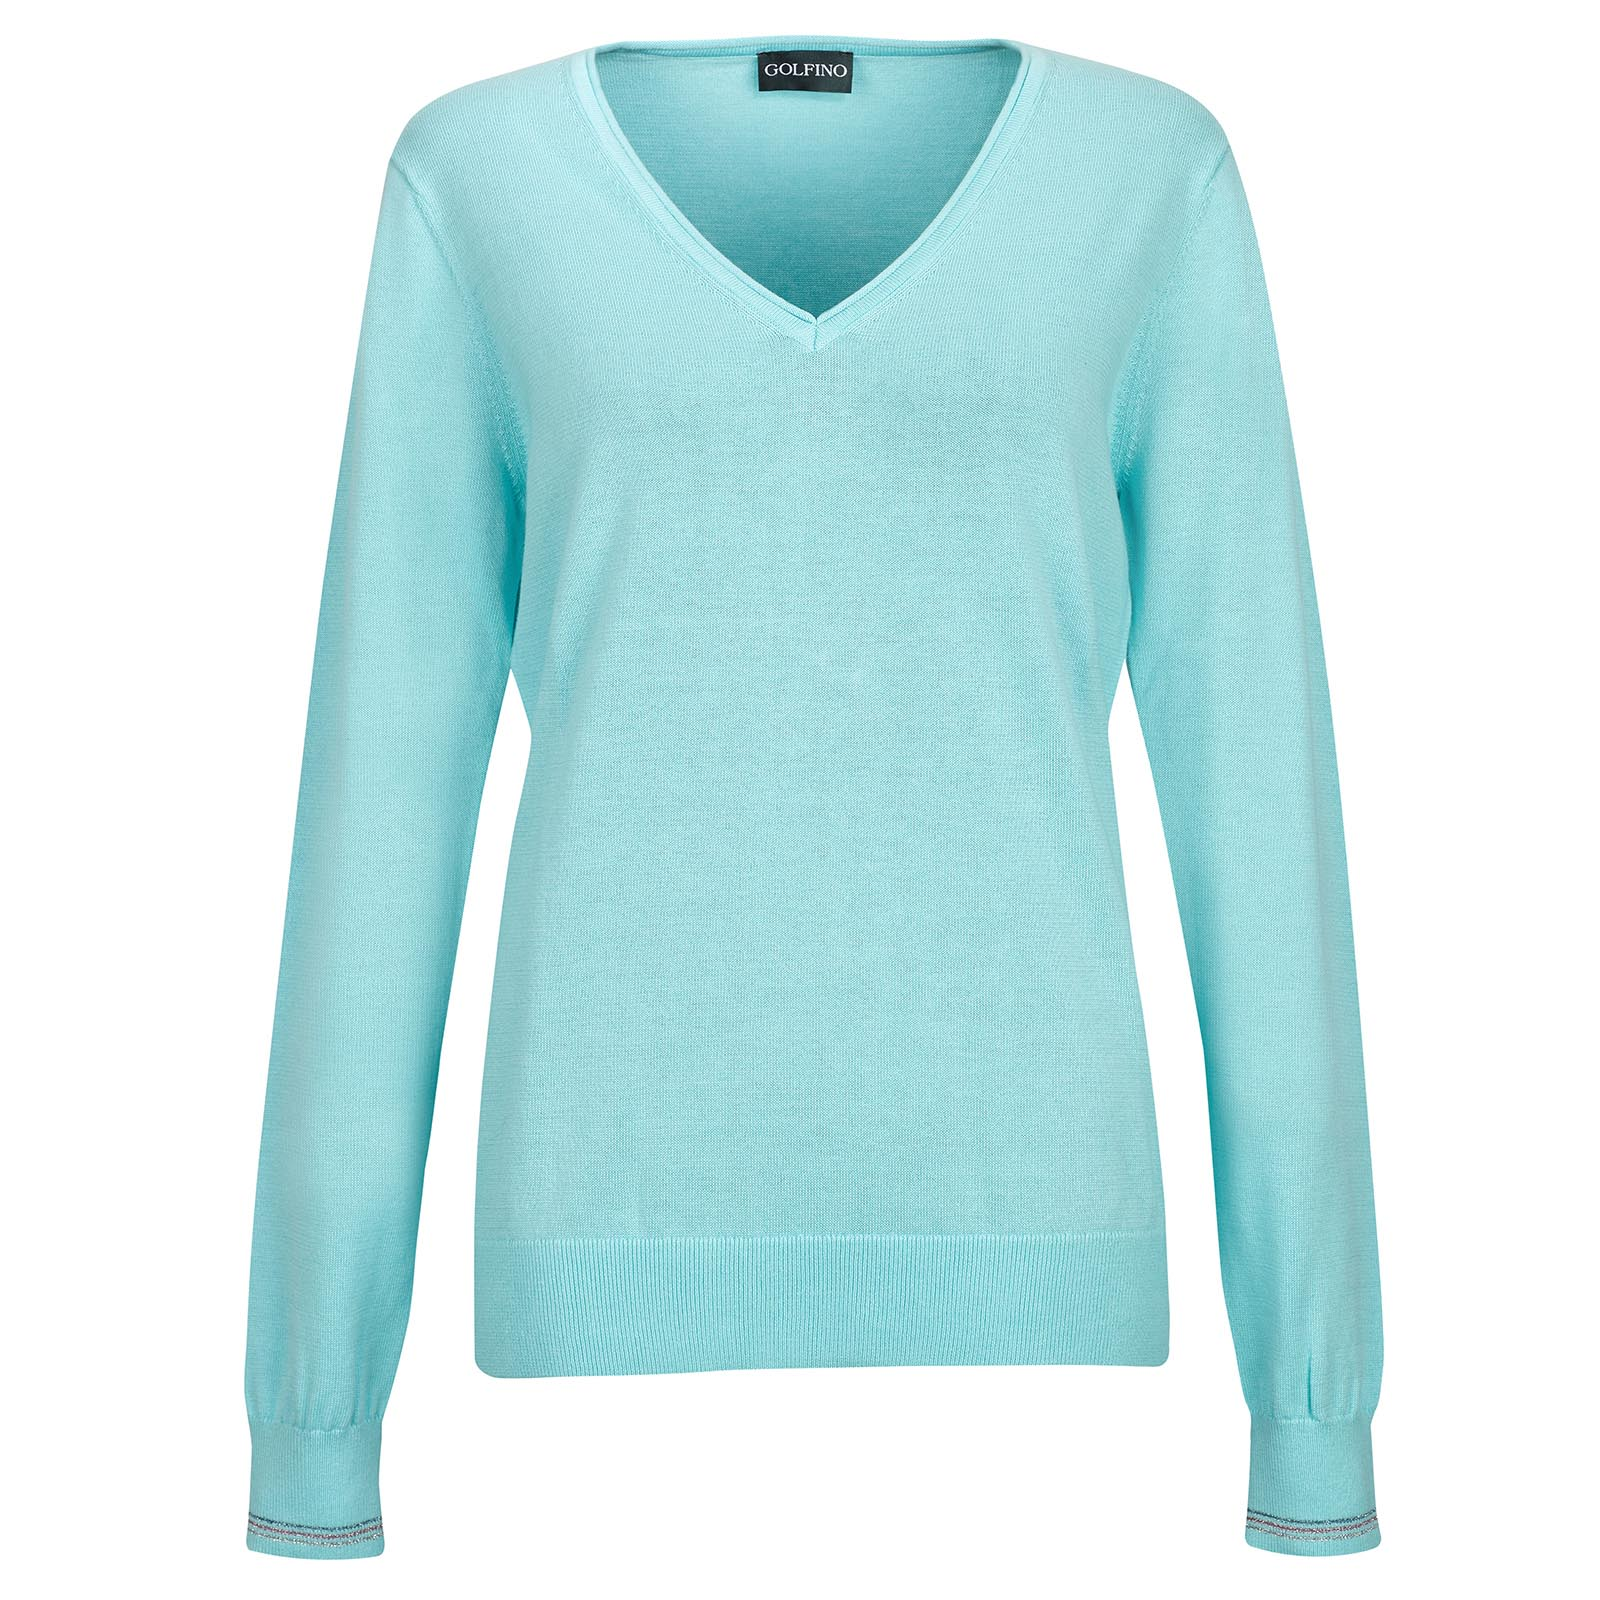 Ladies' knitted cotton pullover with shimmering details